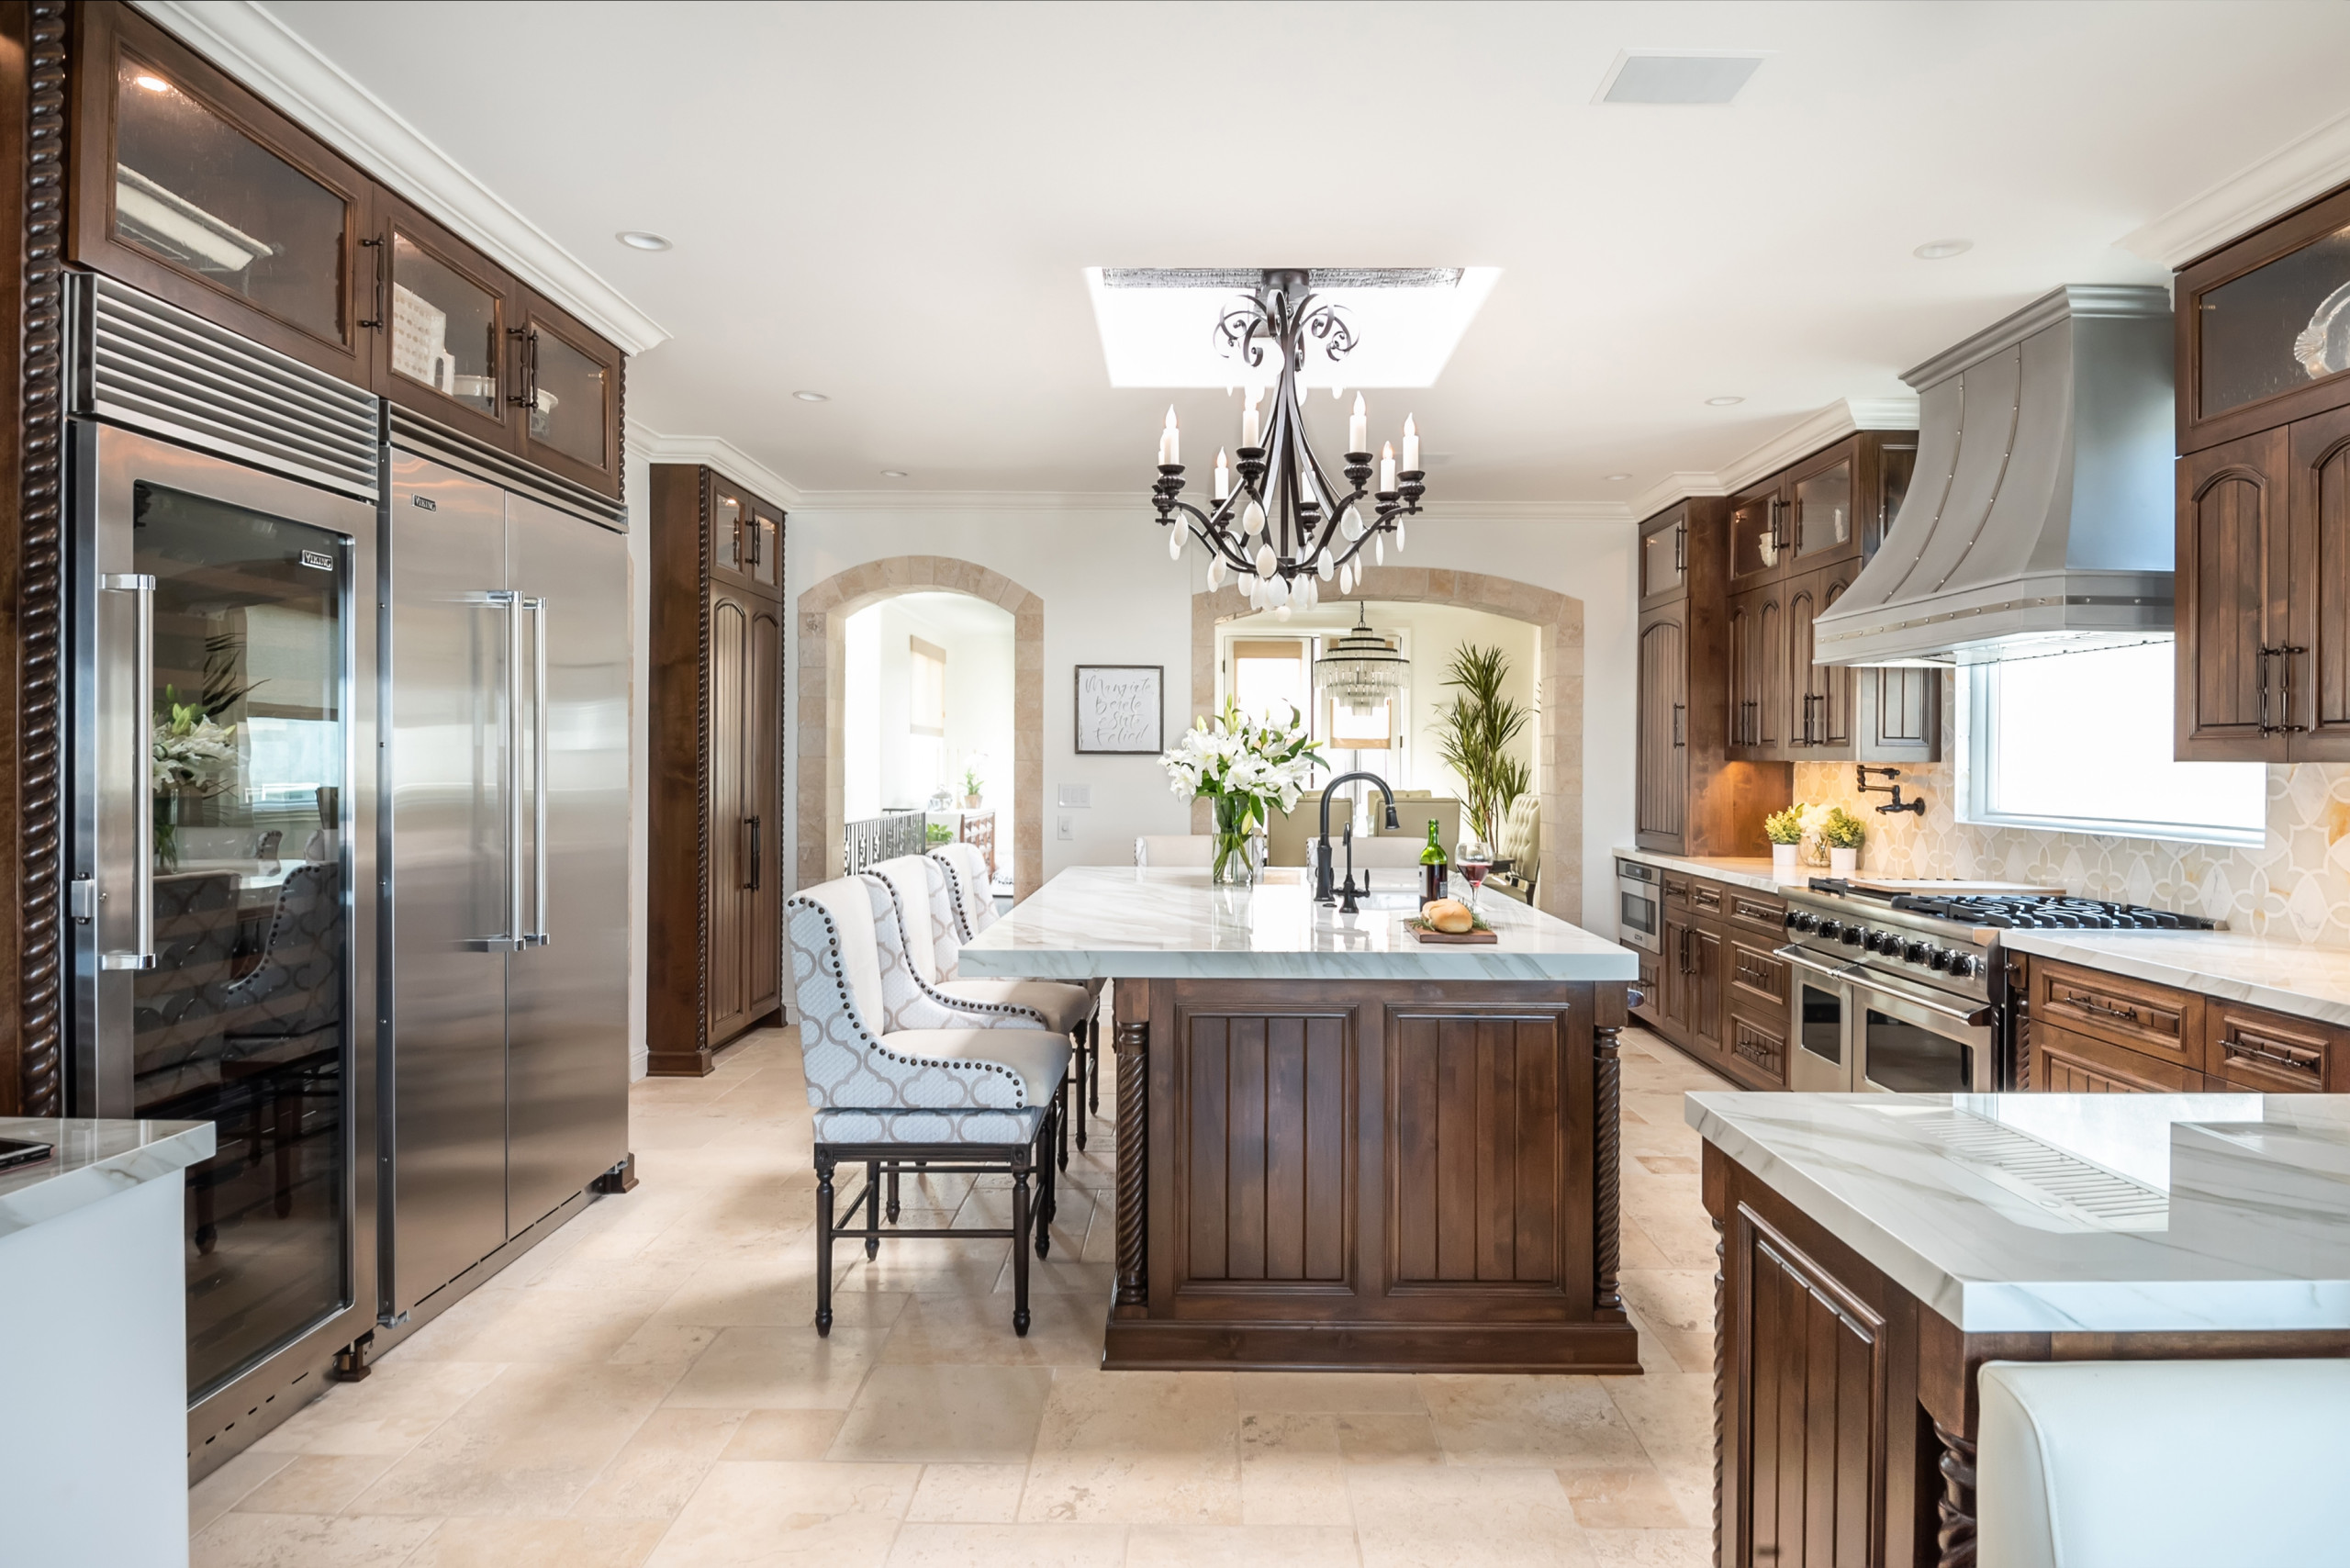 75 Beautiful French Country Kitchen Pictures Ideas November 2020 Houzz